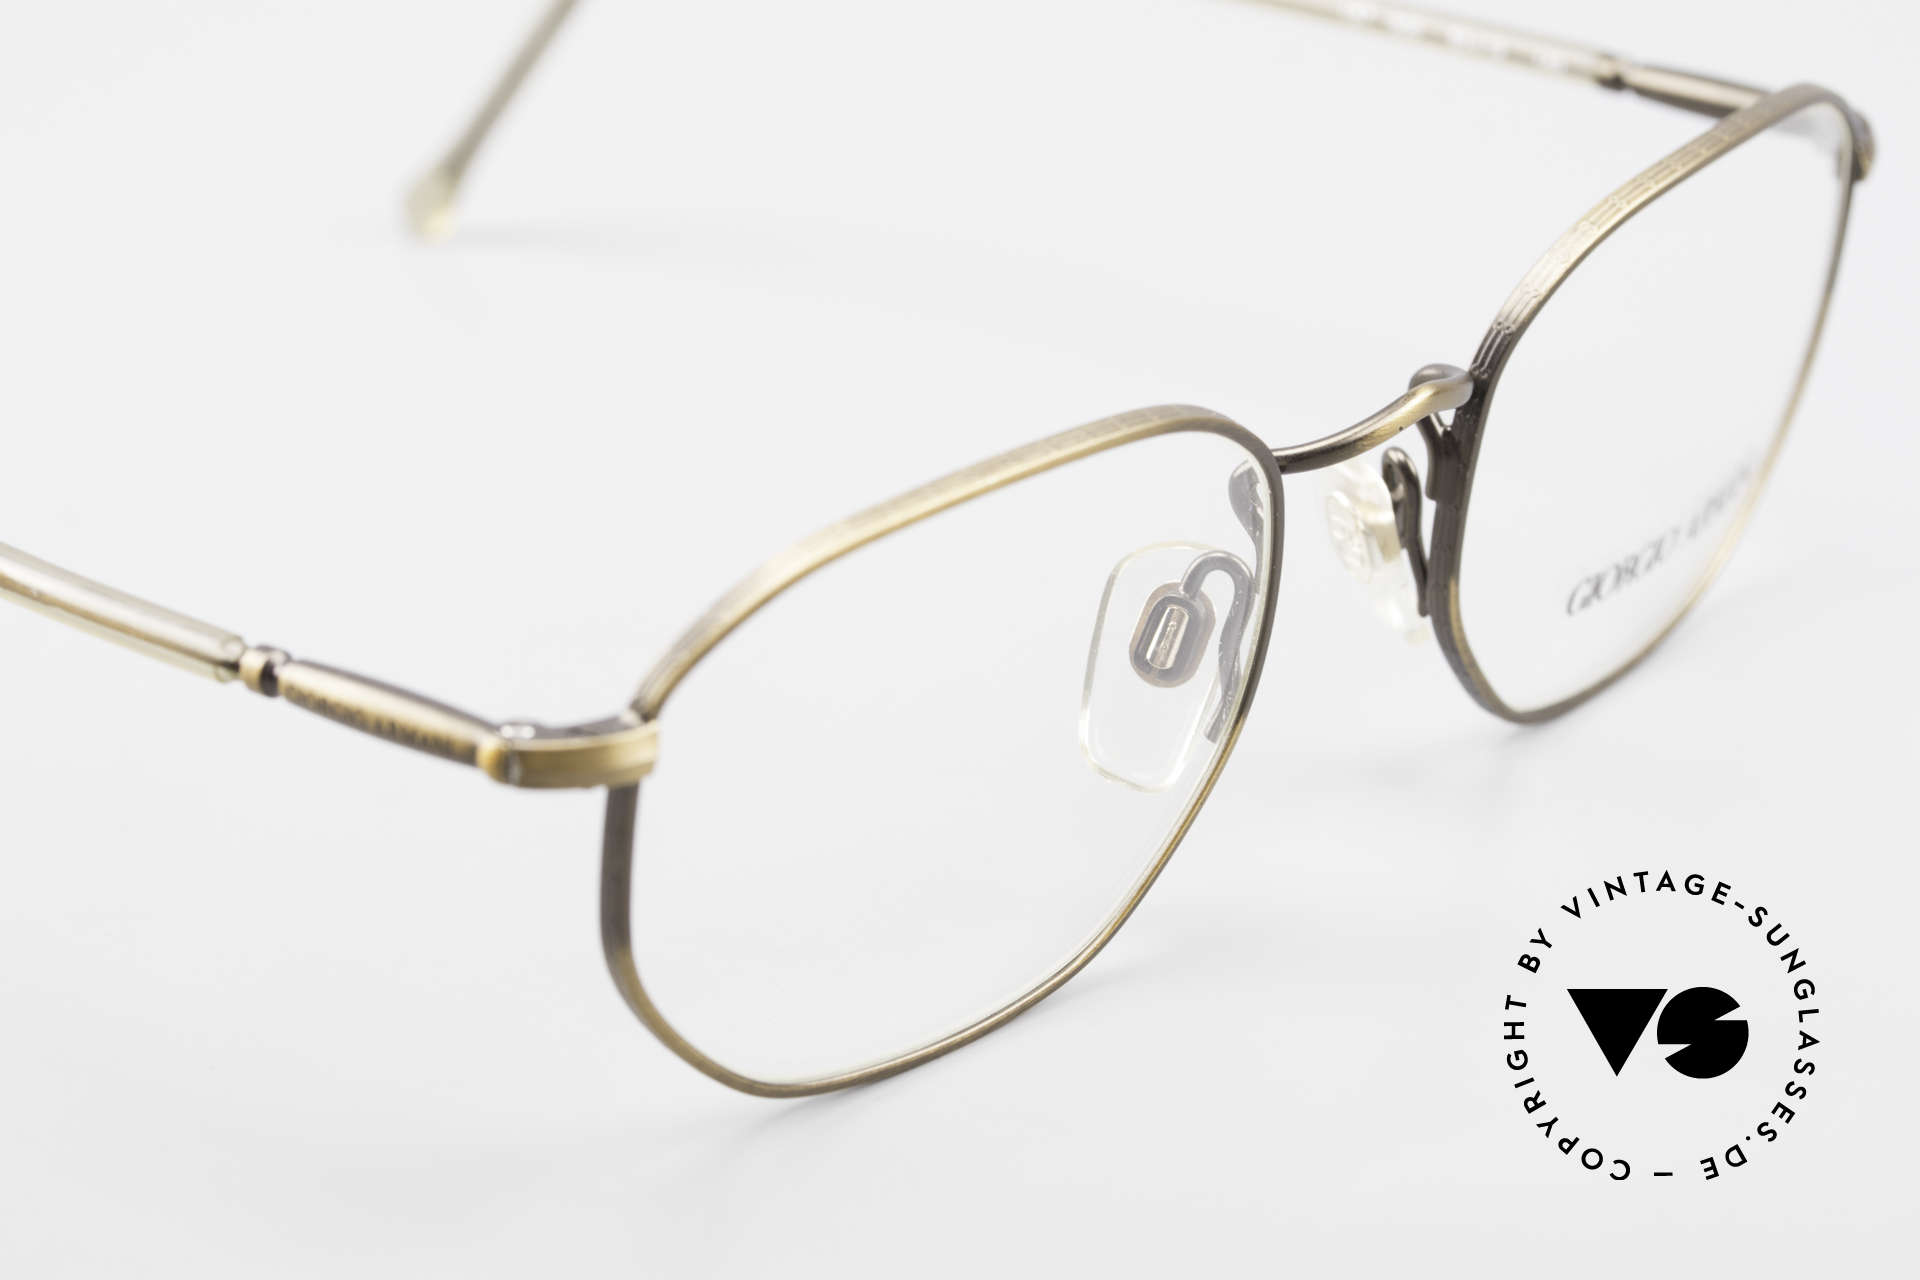 Giorgio Armani 187 Classic Men's Eyeglasses 90's, NO RETRO eyewear, but a unique 25 years old original!, Made for Men